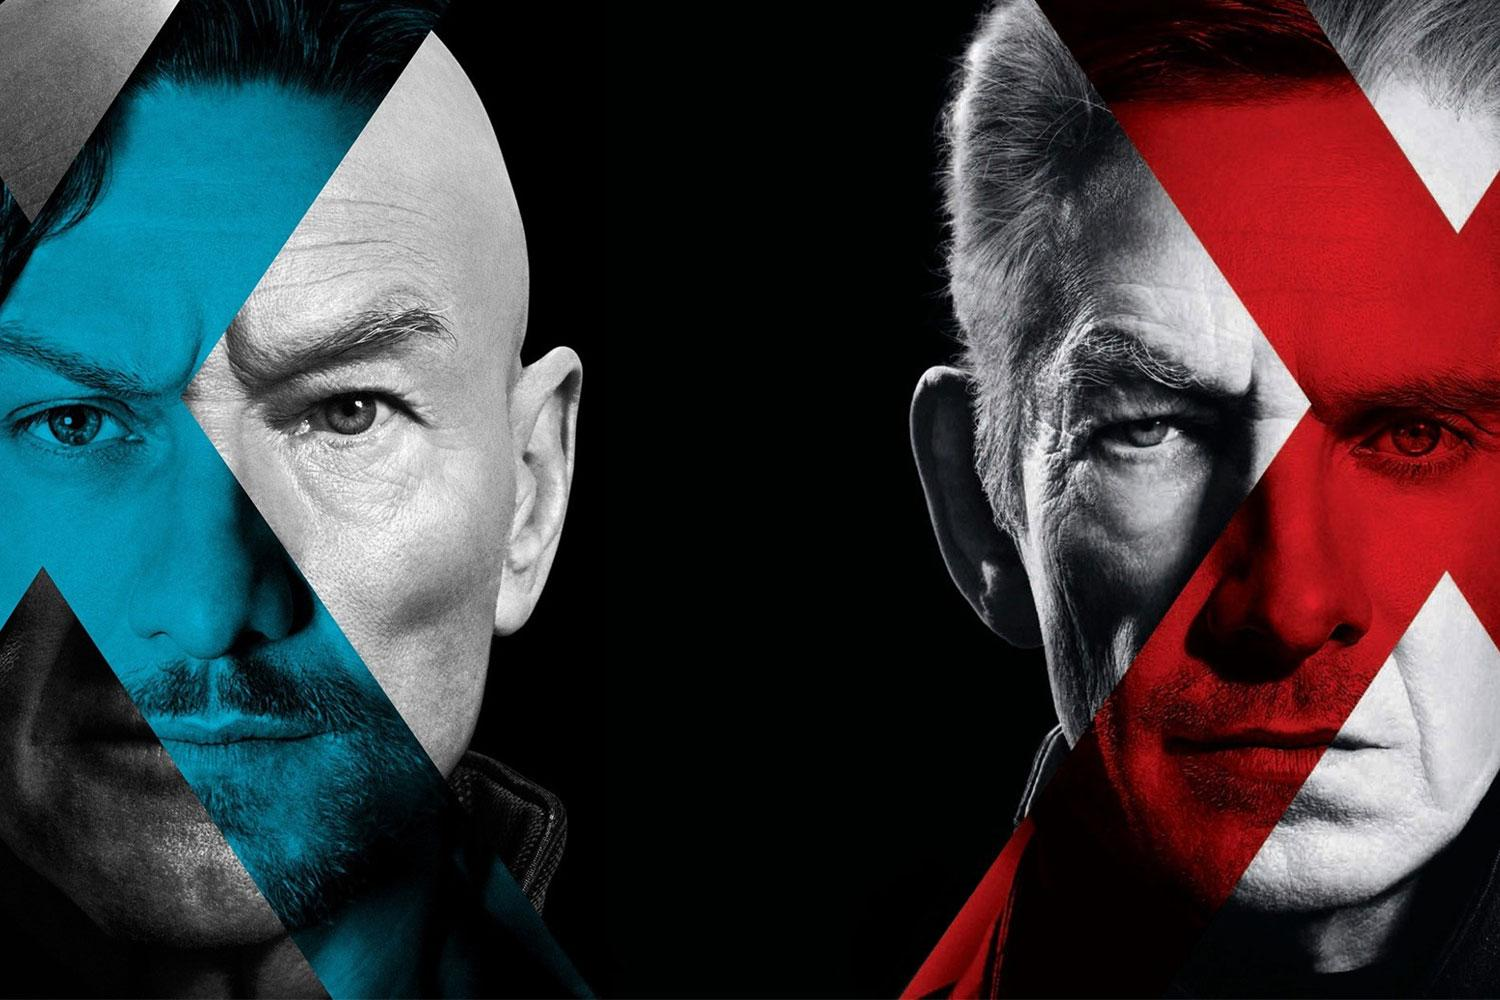 watch the new trailer for x men days of future past film watch the new trailer for x men days of future past film trailer